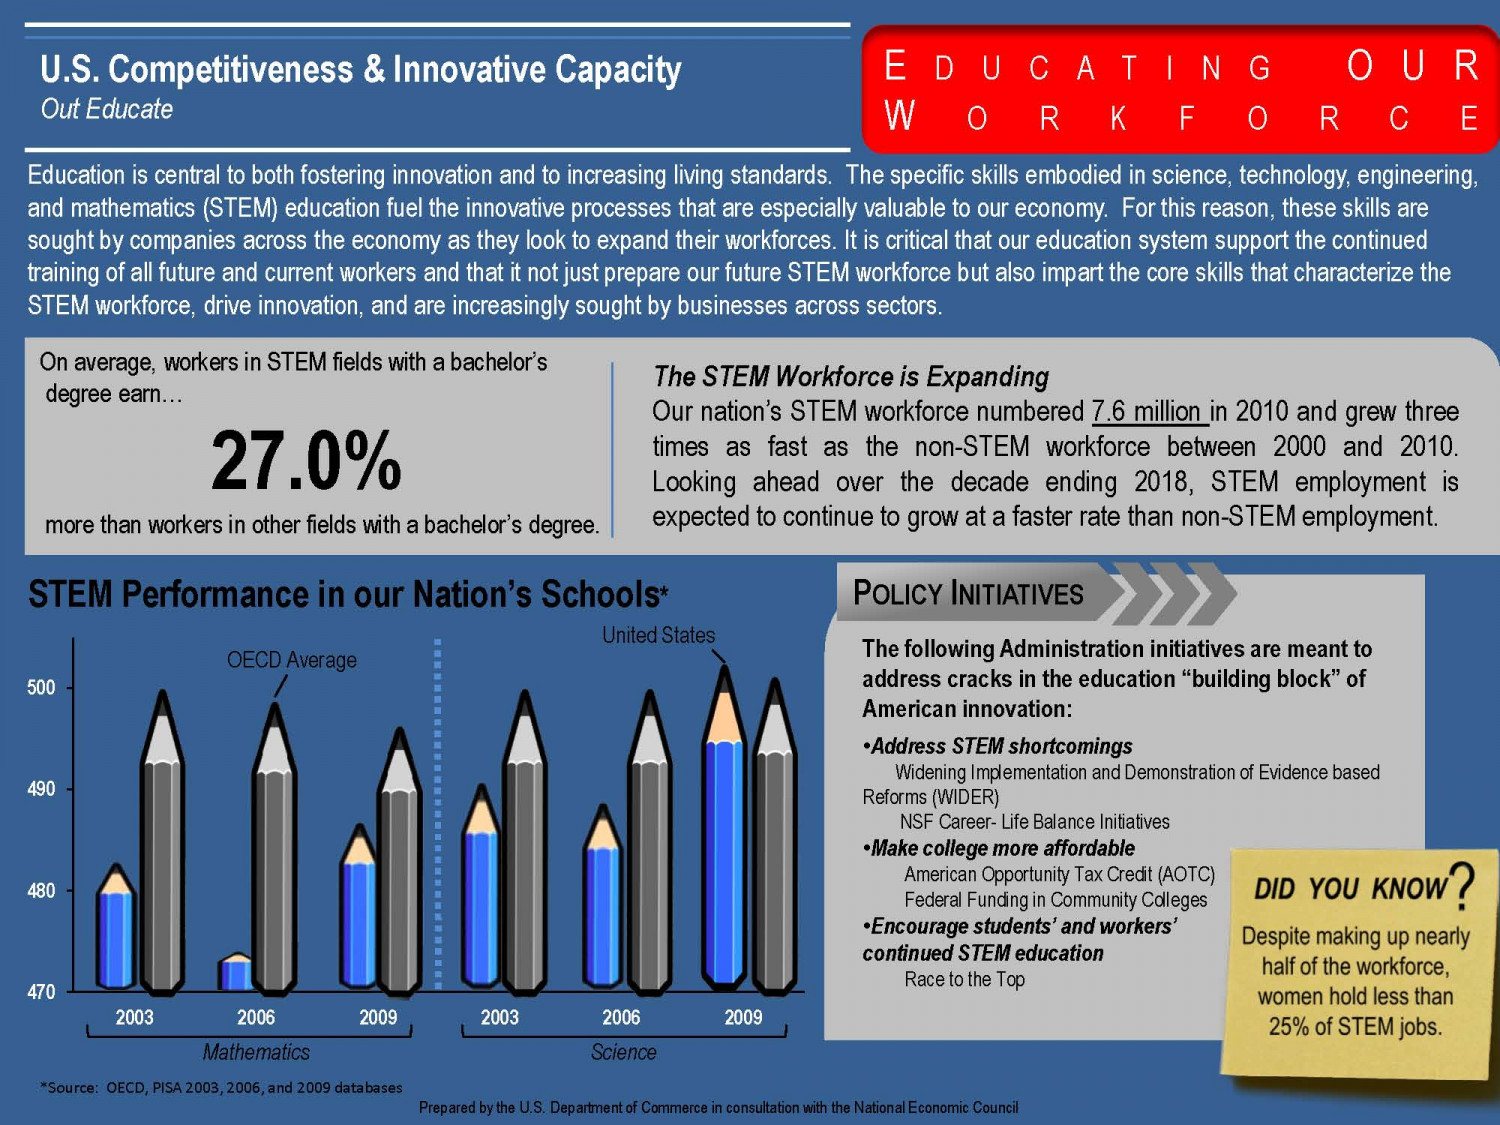 Out Educate: Educating Our Workforce Infographic